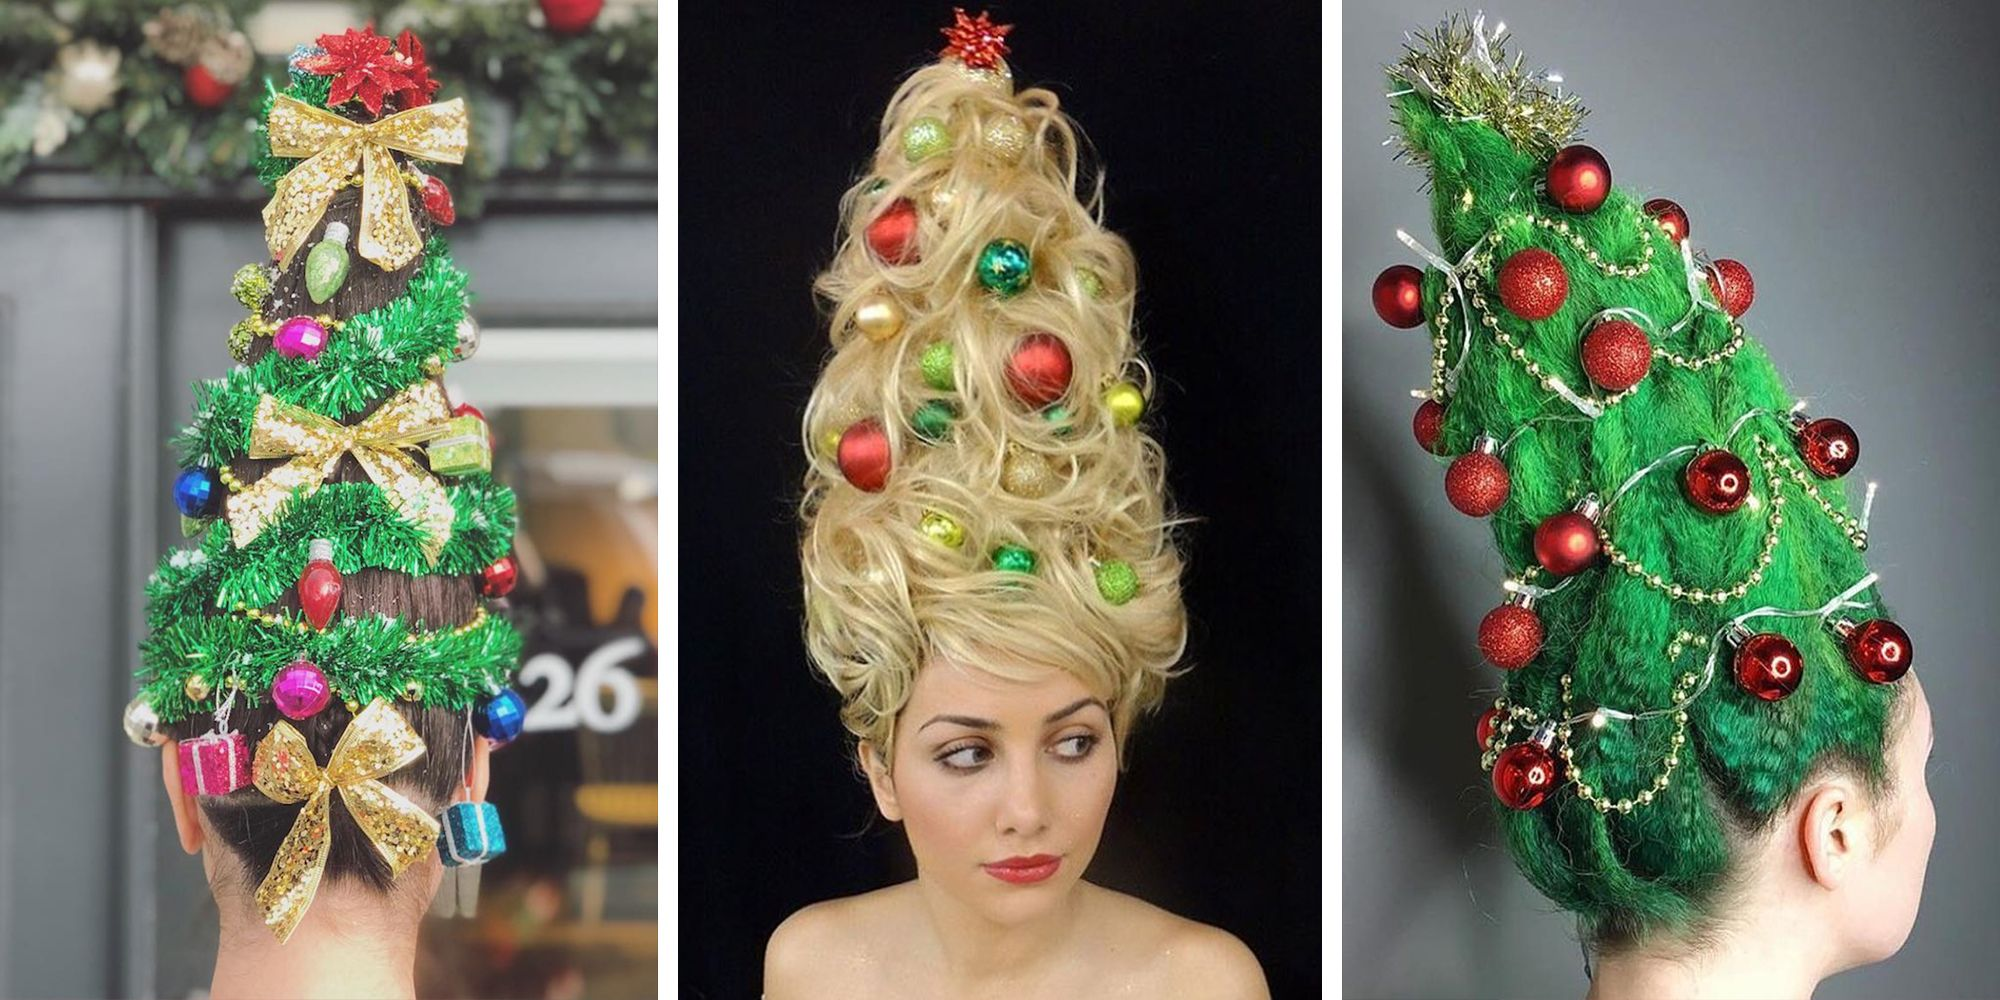 Christmas Tree Hair Will Broadcast Your Love for the Holiday Season